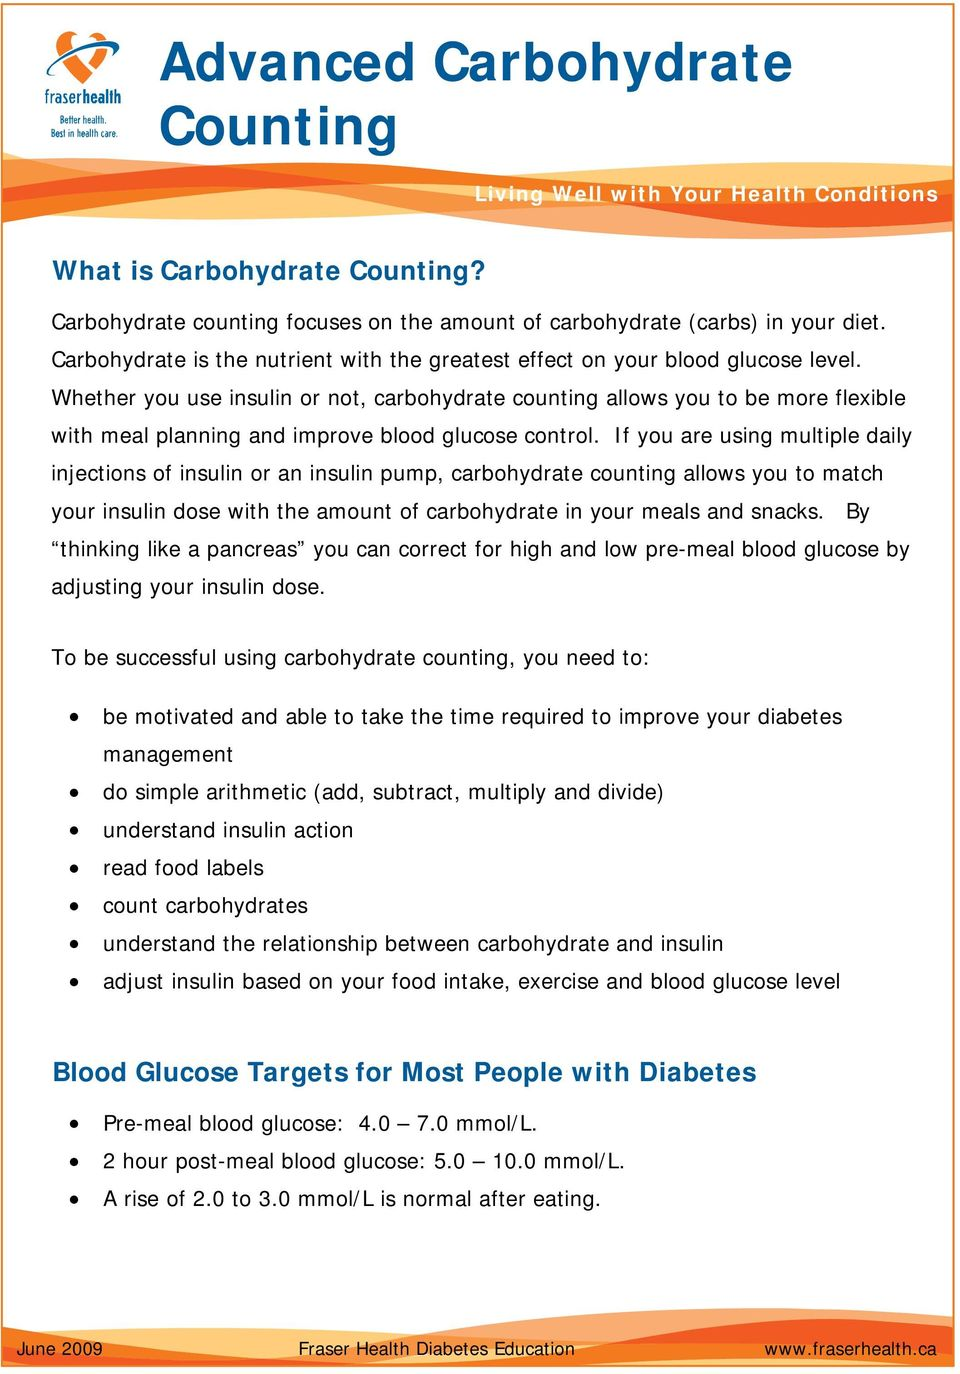 Whether you use insulin or not, carbohydrate counting allows you to be more flexible with meal planning and improve blood glucose control.